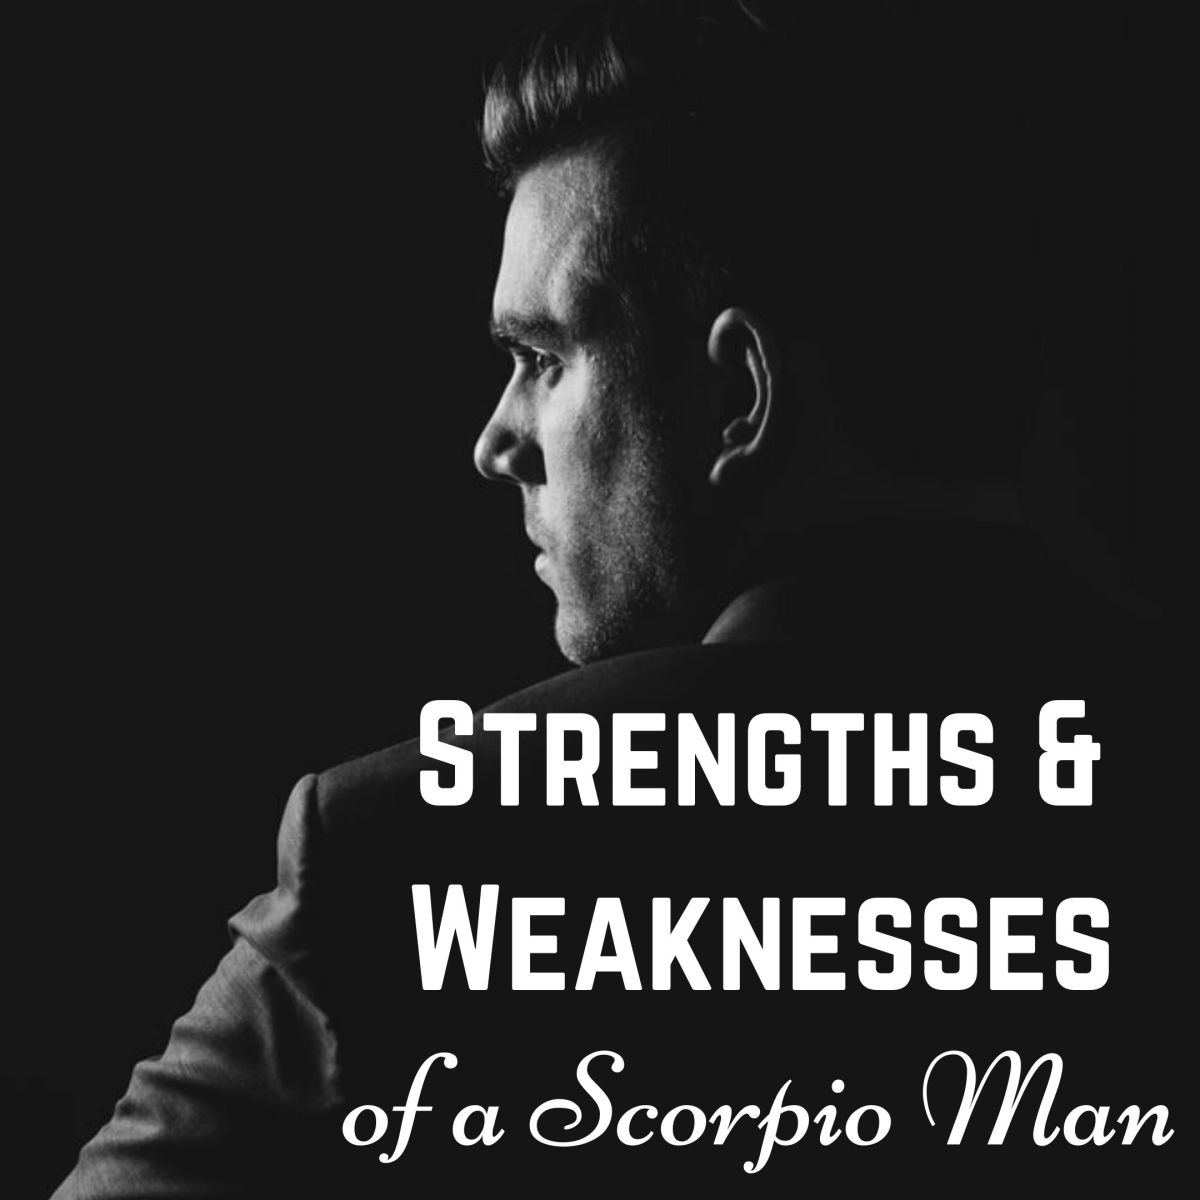 Male Scorpio Personality Traits (Strengths and Weaknesses)